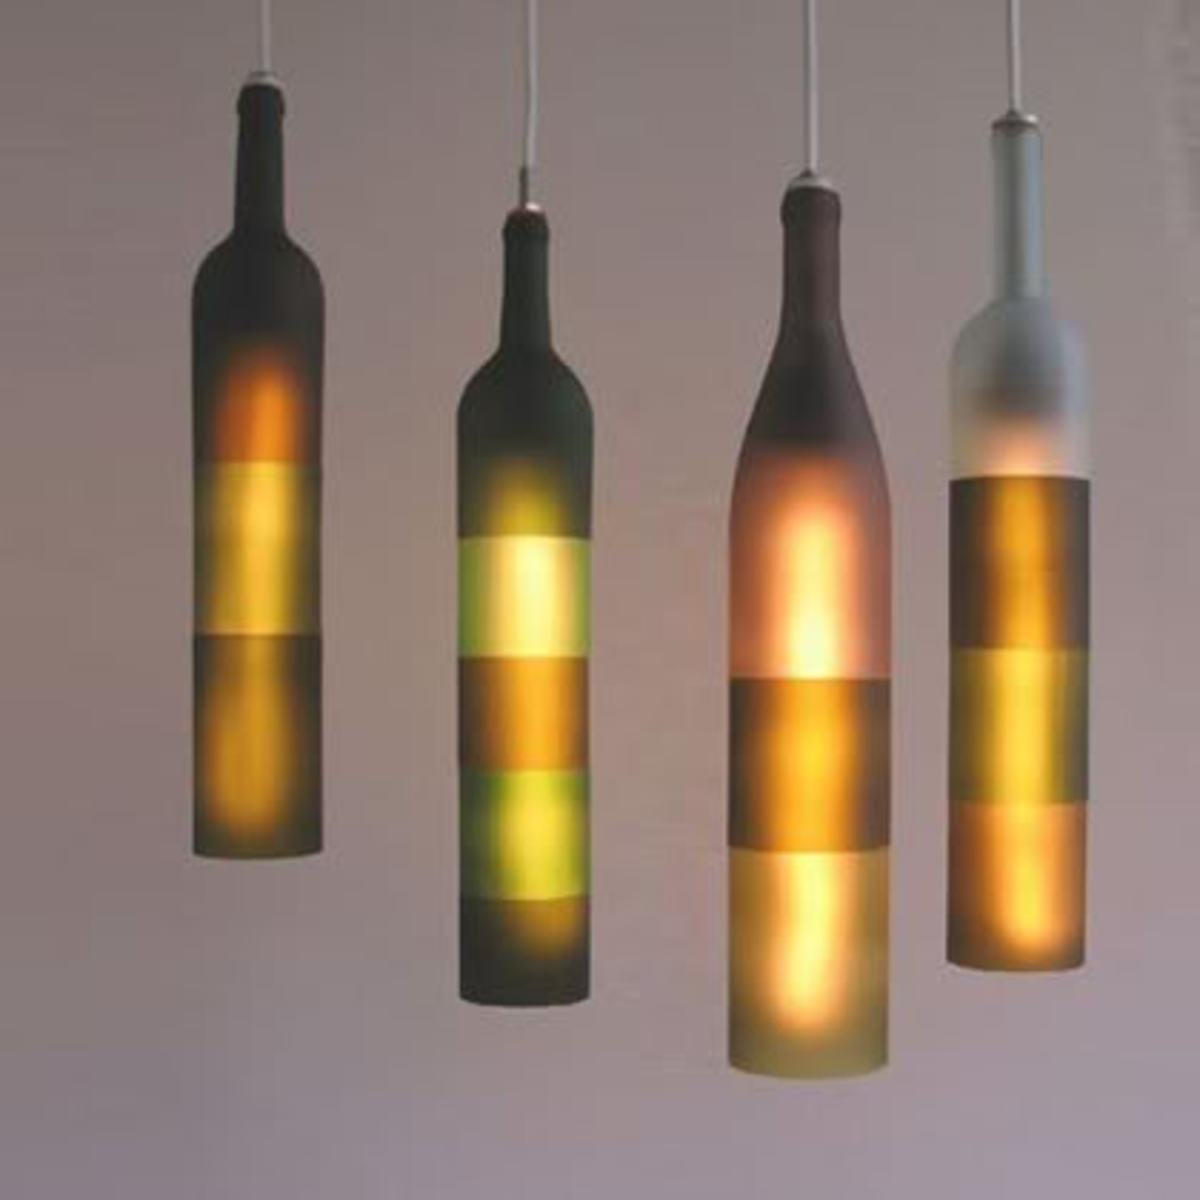 Diy pendant lights dengarden bottle pendant lights aloadofball Image collections